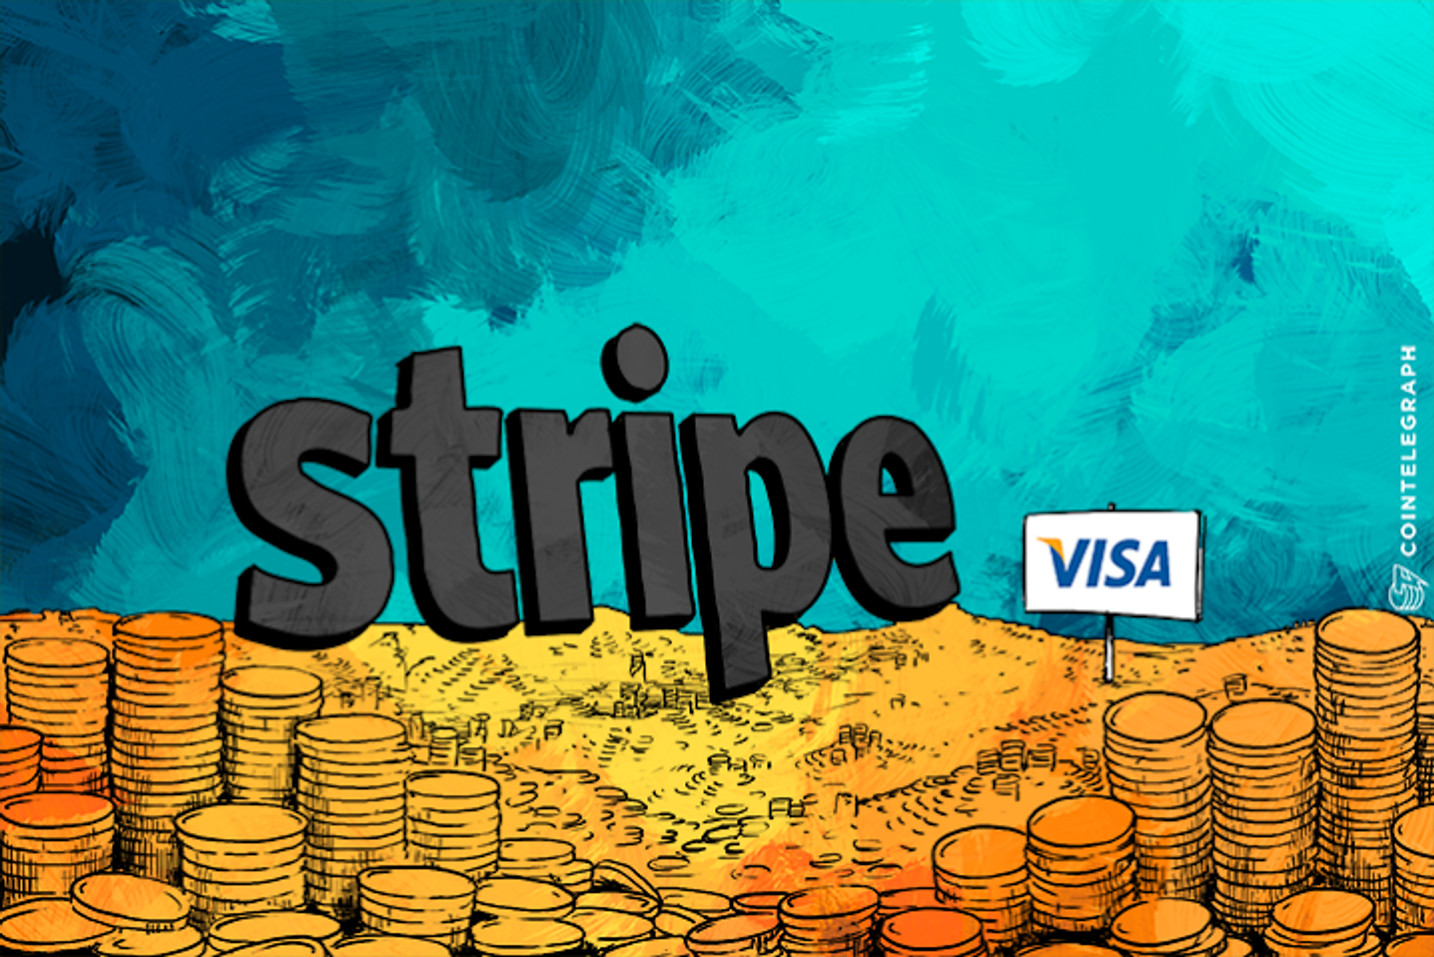 Stripe Partners with Visa for 'Digital Payment Improvements'